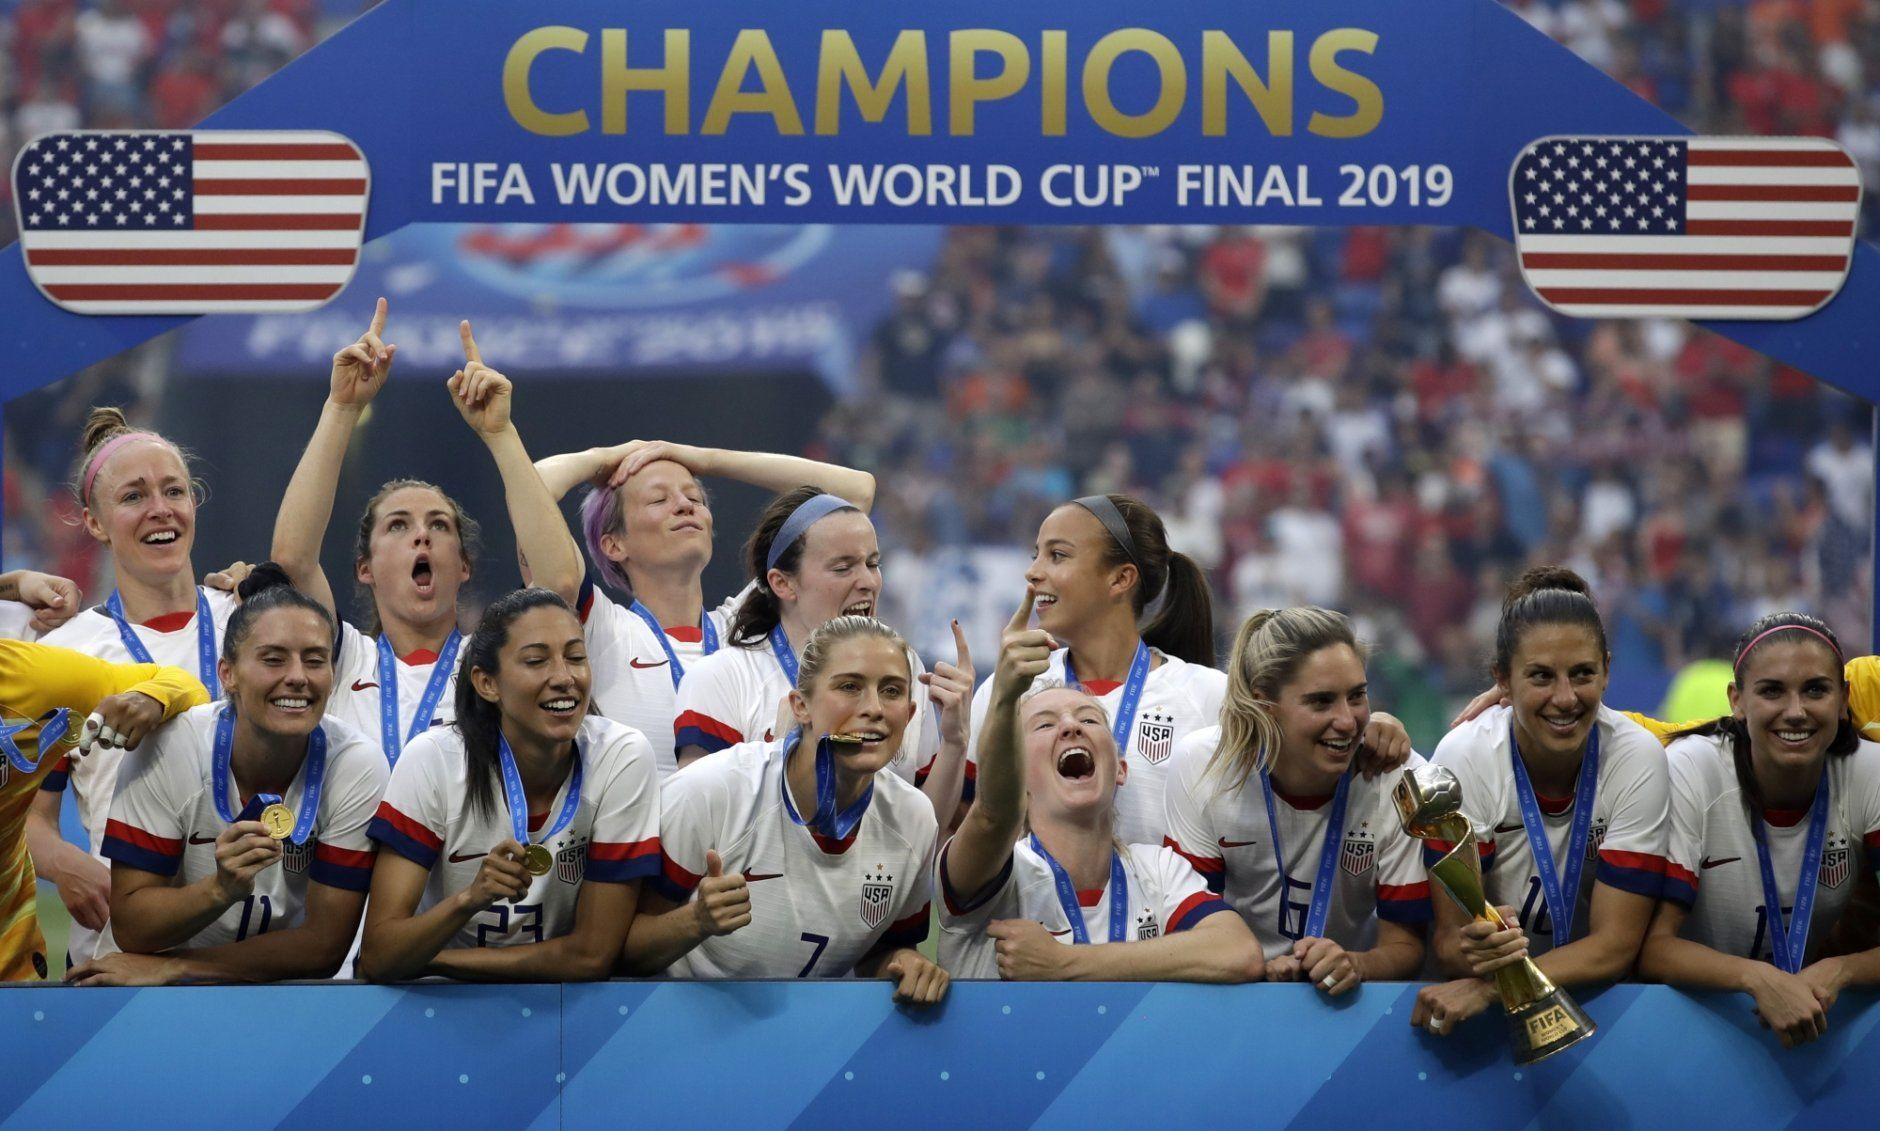 United States' player celebrate after the Women's World Cup final soccer match between US and The Netherlands at the Stade de Lyon in Decines, outside Lyon, France, Sunday, July 7, 2019. (AP Photo/Alessandra Tarantino)